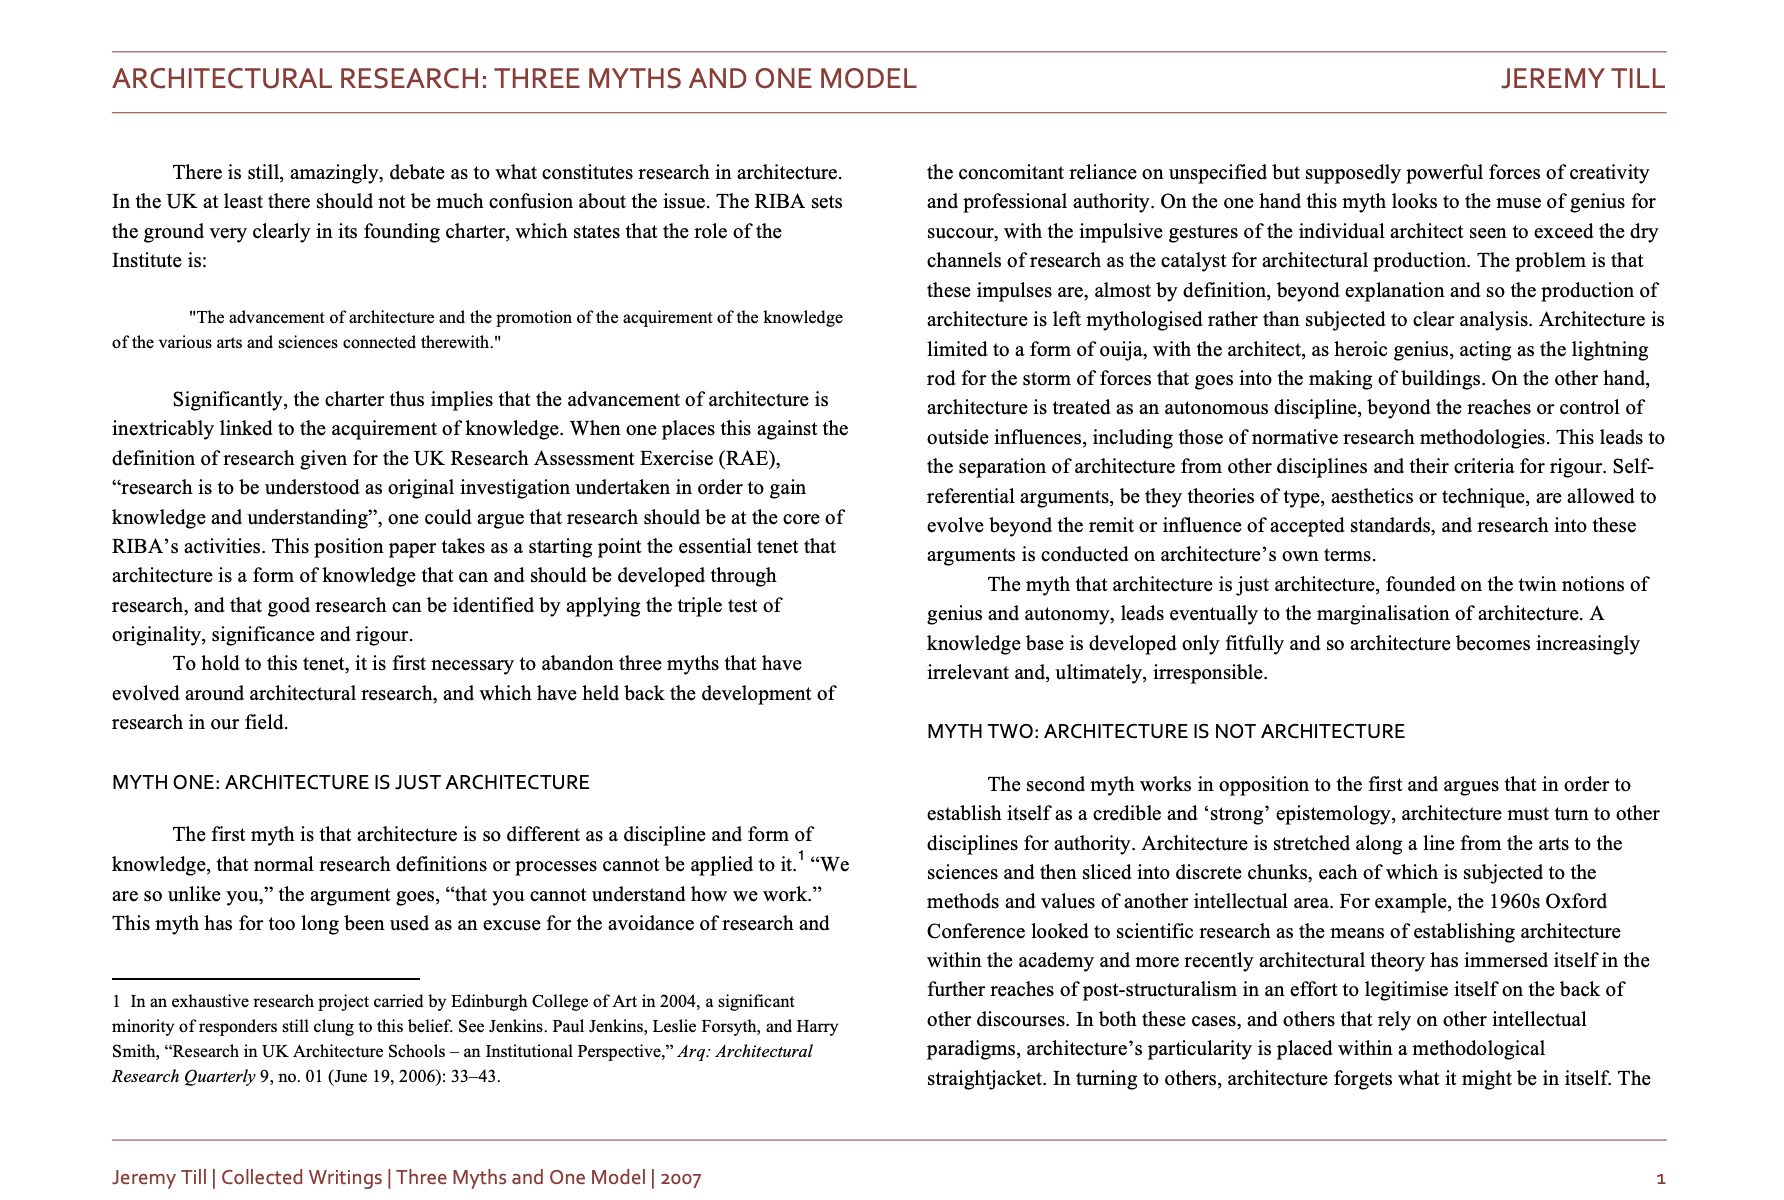 Three Myths and One Model, 2007